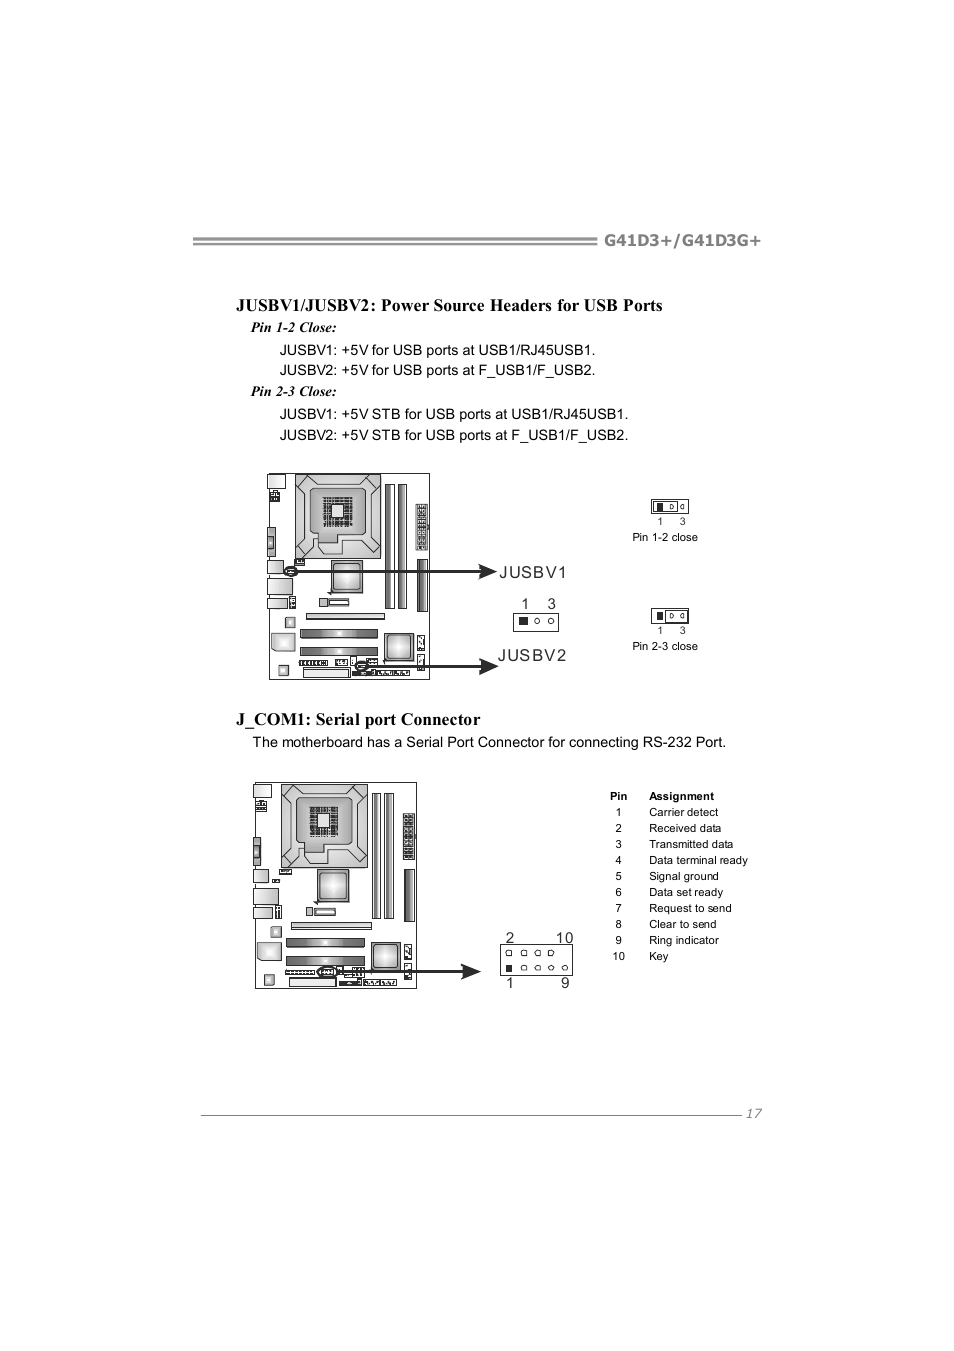 Jusbv1 Jusbv2 Power Source Headers For Usb Ports J Com1 Serial Port To Wiring Diagram Connector Longshine G41d3g User Manual Page 19 47